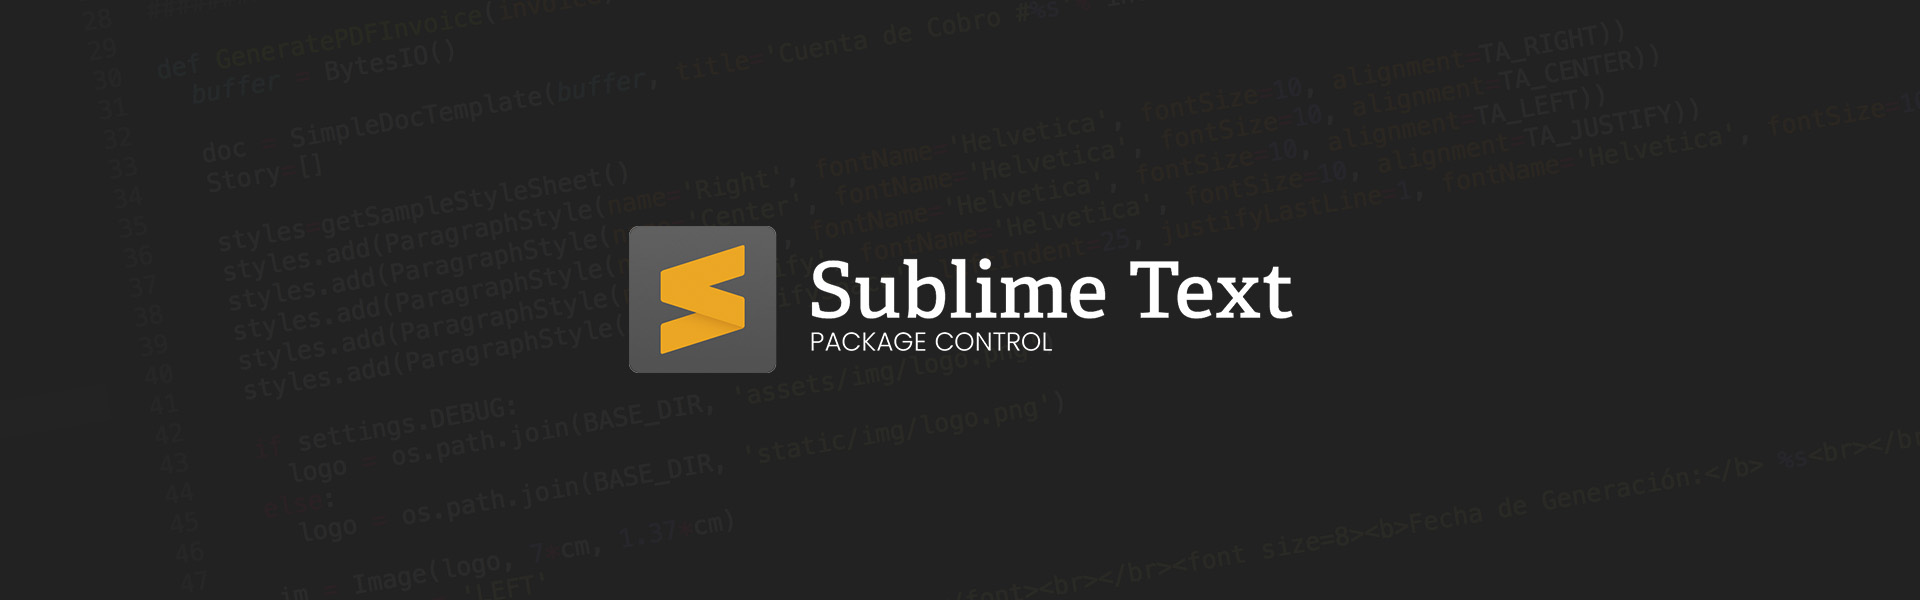 ¿Cómo instalar plugins en Sublime Text 3?